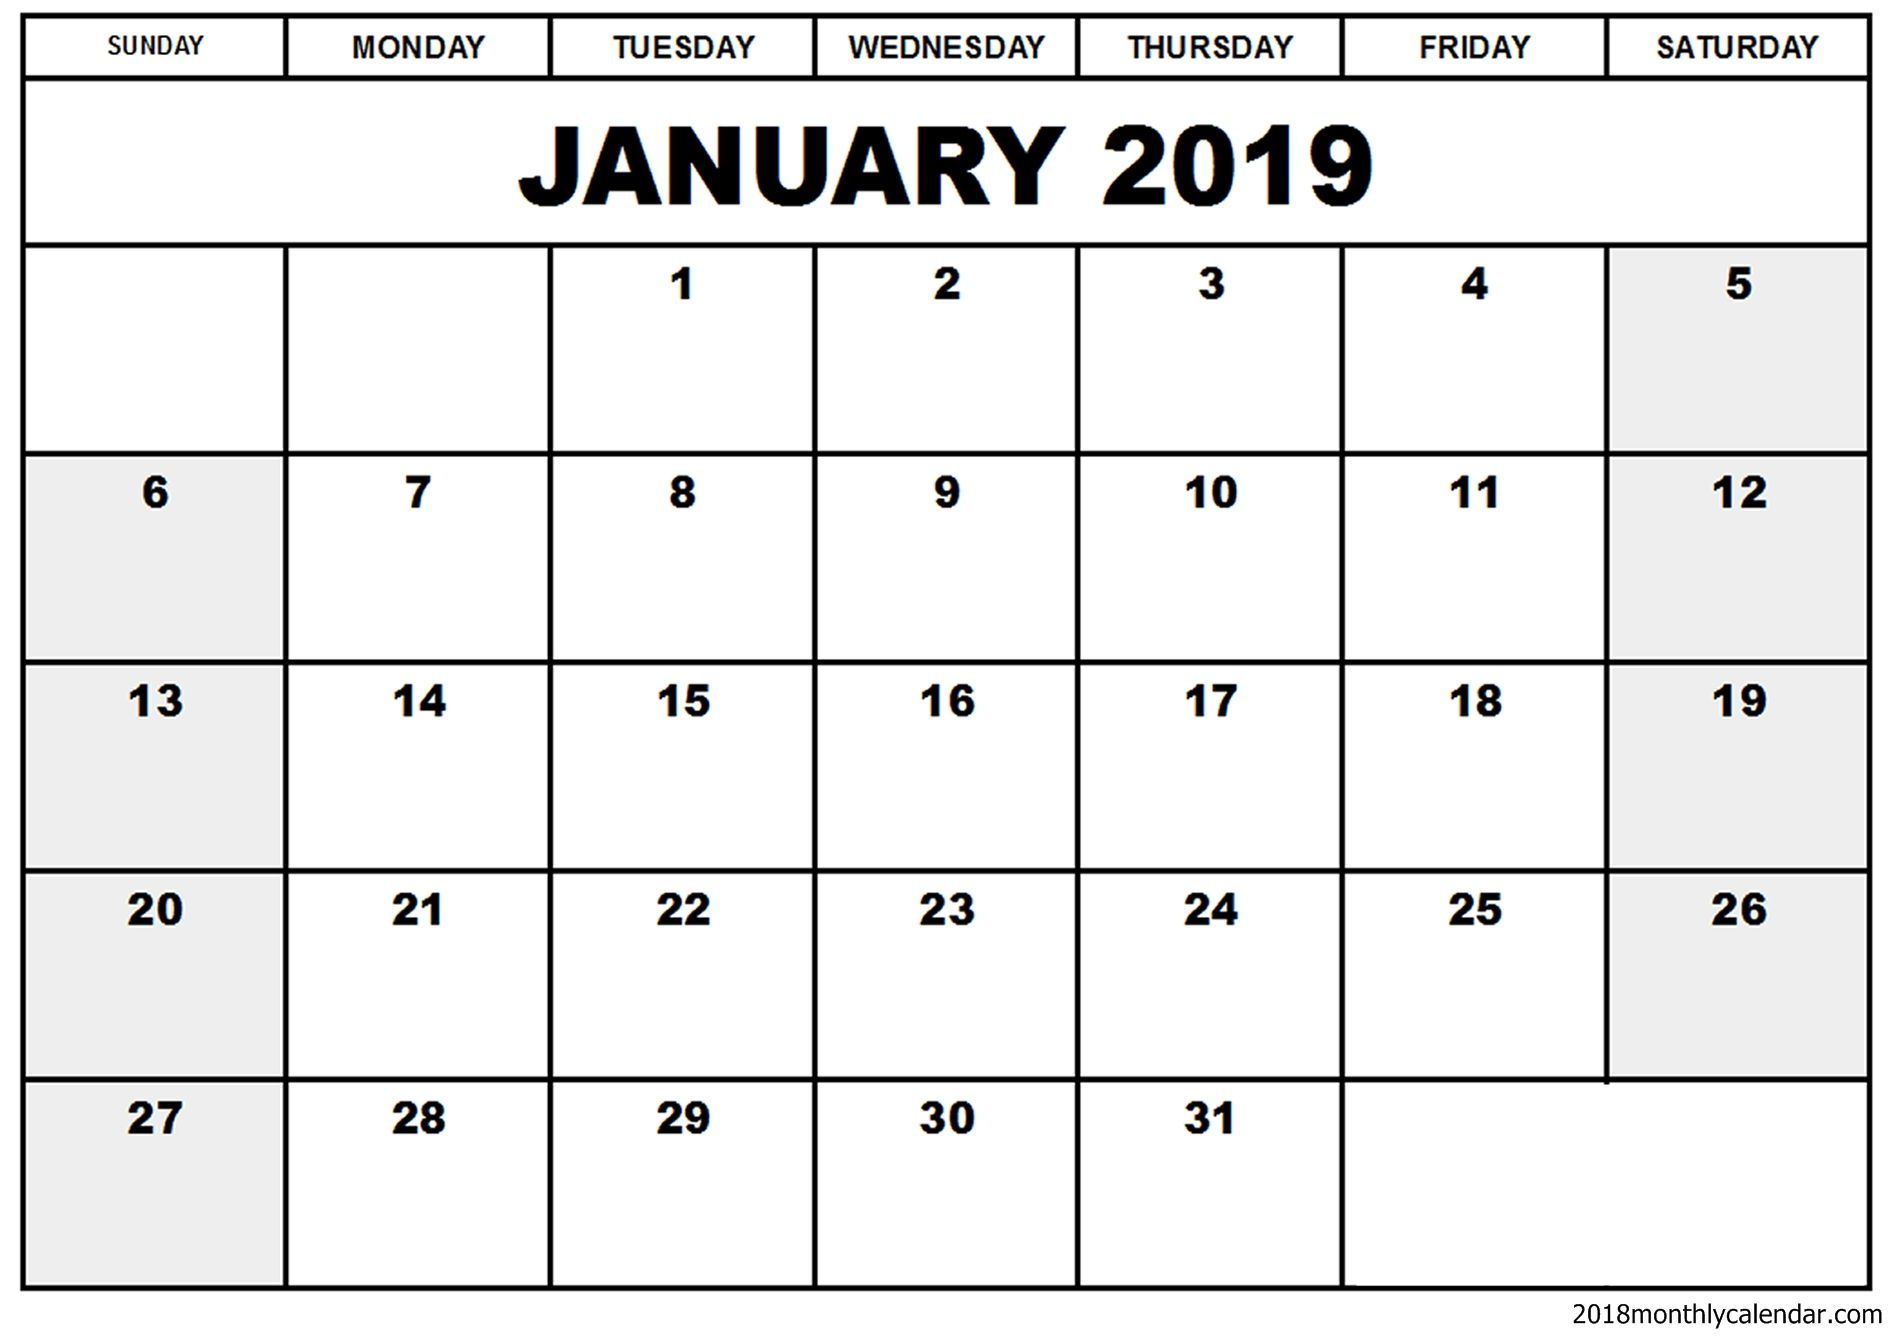 Printable And Editable January 2019 Calendar Blank January 2019 Calendar Template #January2019